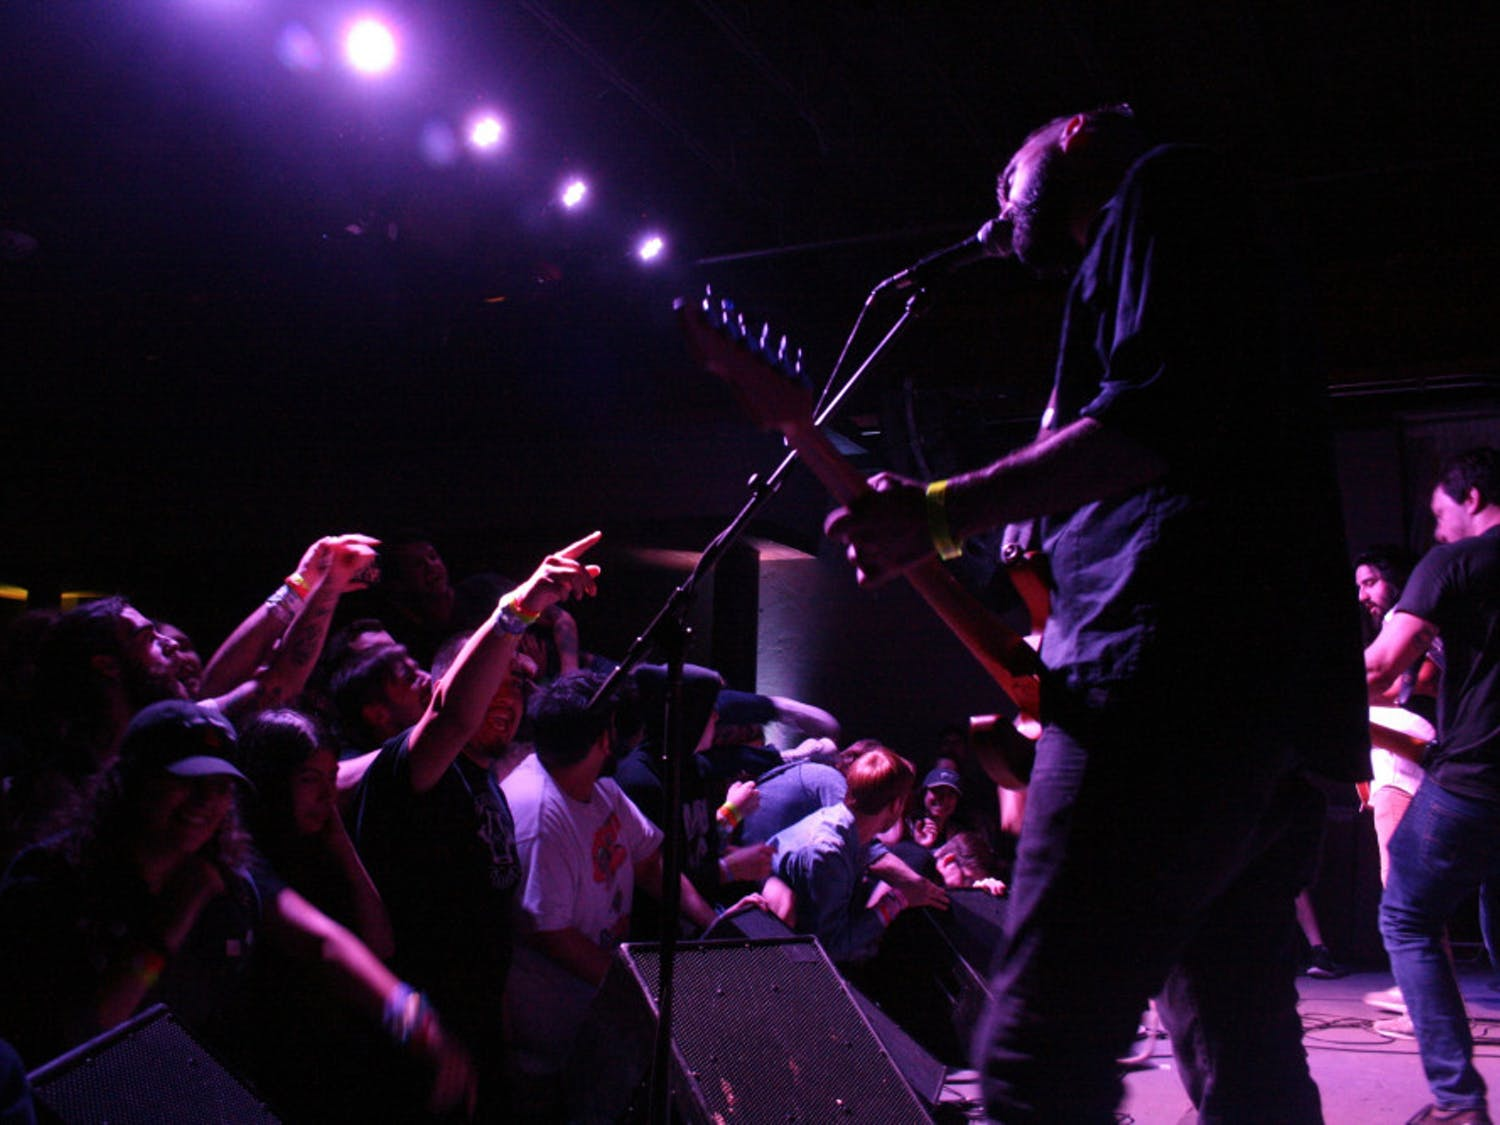 Dikembe, a popular local punk band, performed at The Wooly Saturday night during the only sold-out Fest show.